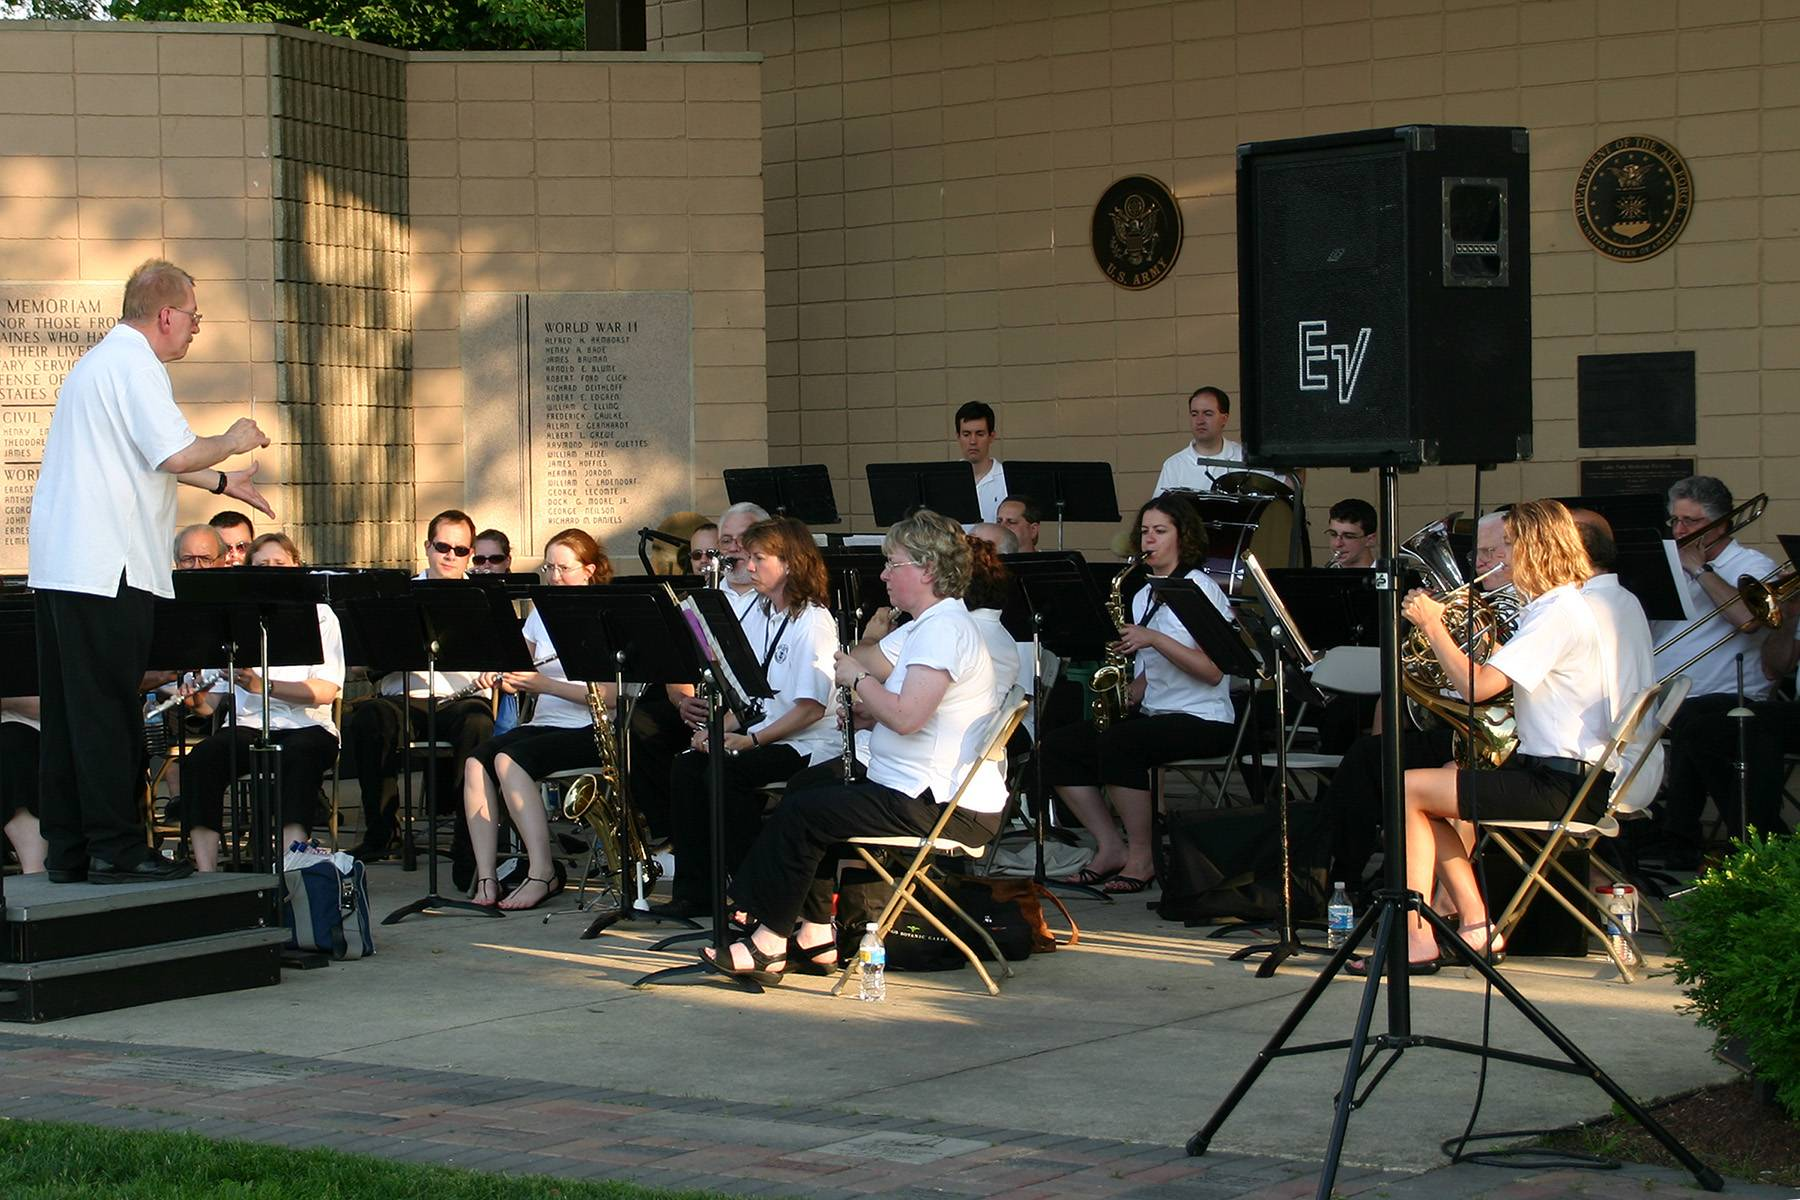 The Des Plaines Park District Community Concert Band at the Lake Park Pavilion during an outdoor summer concert at Live at the Lake.